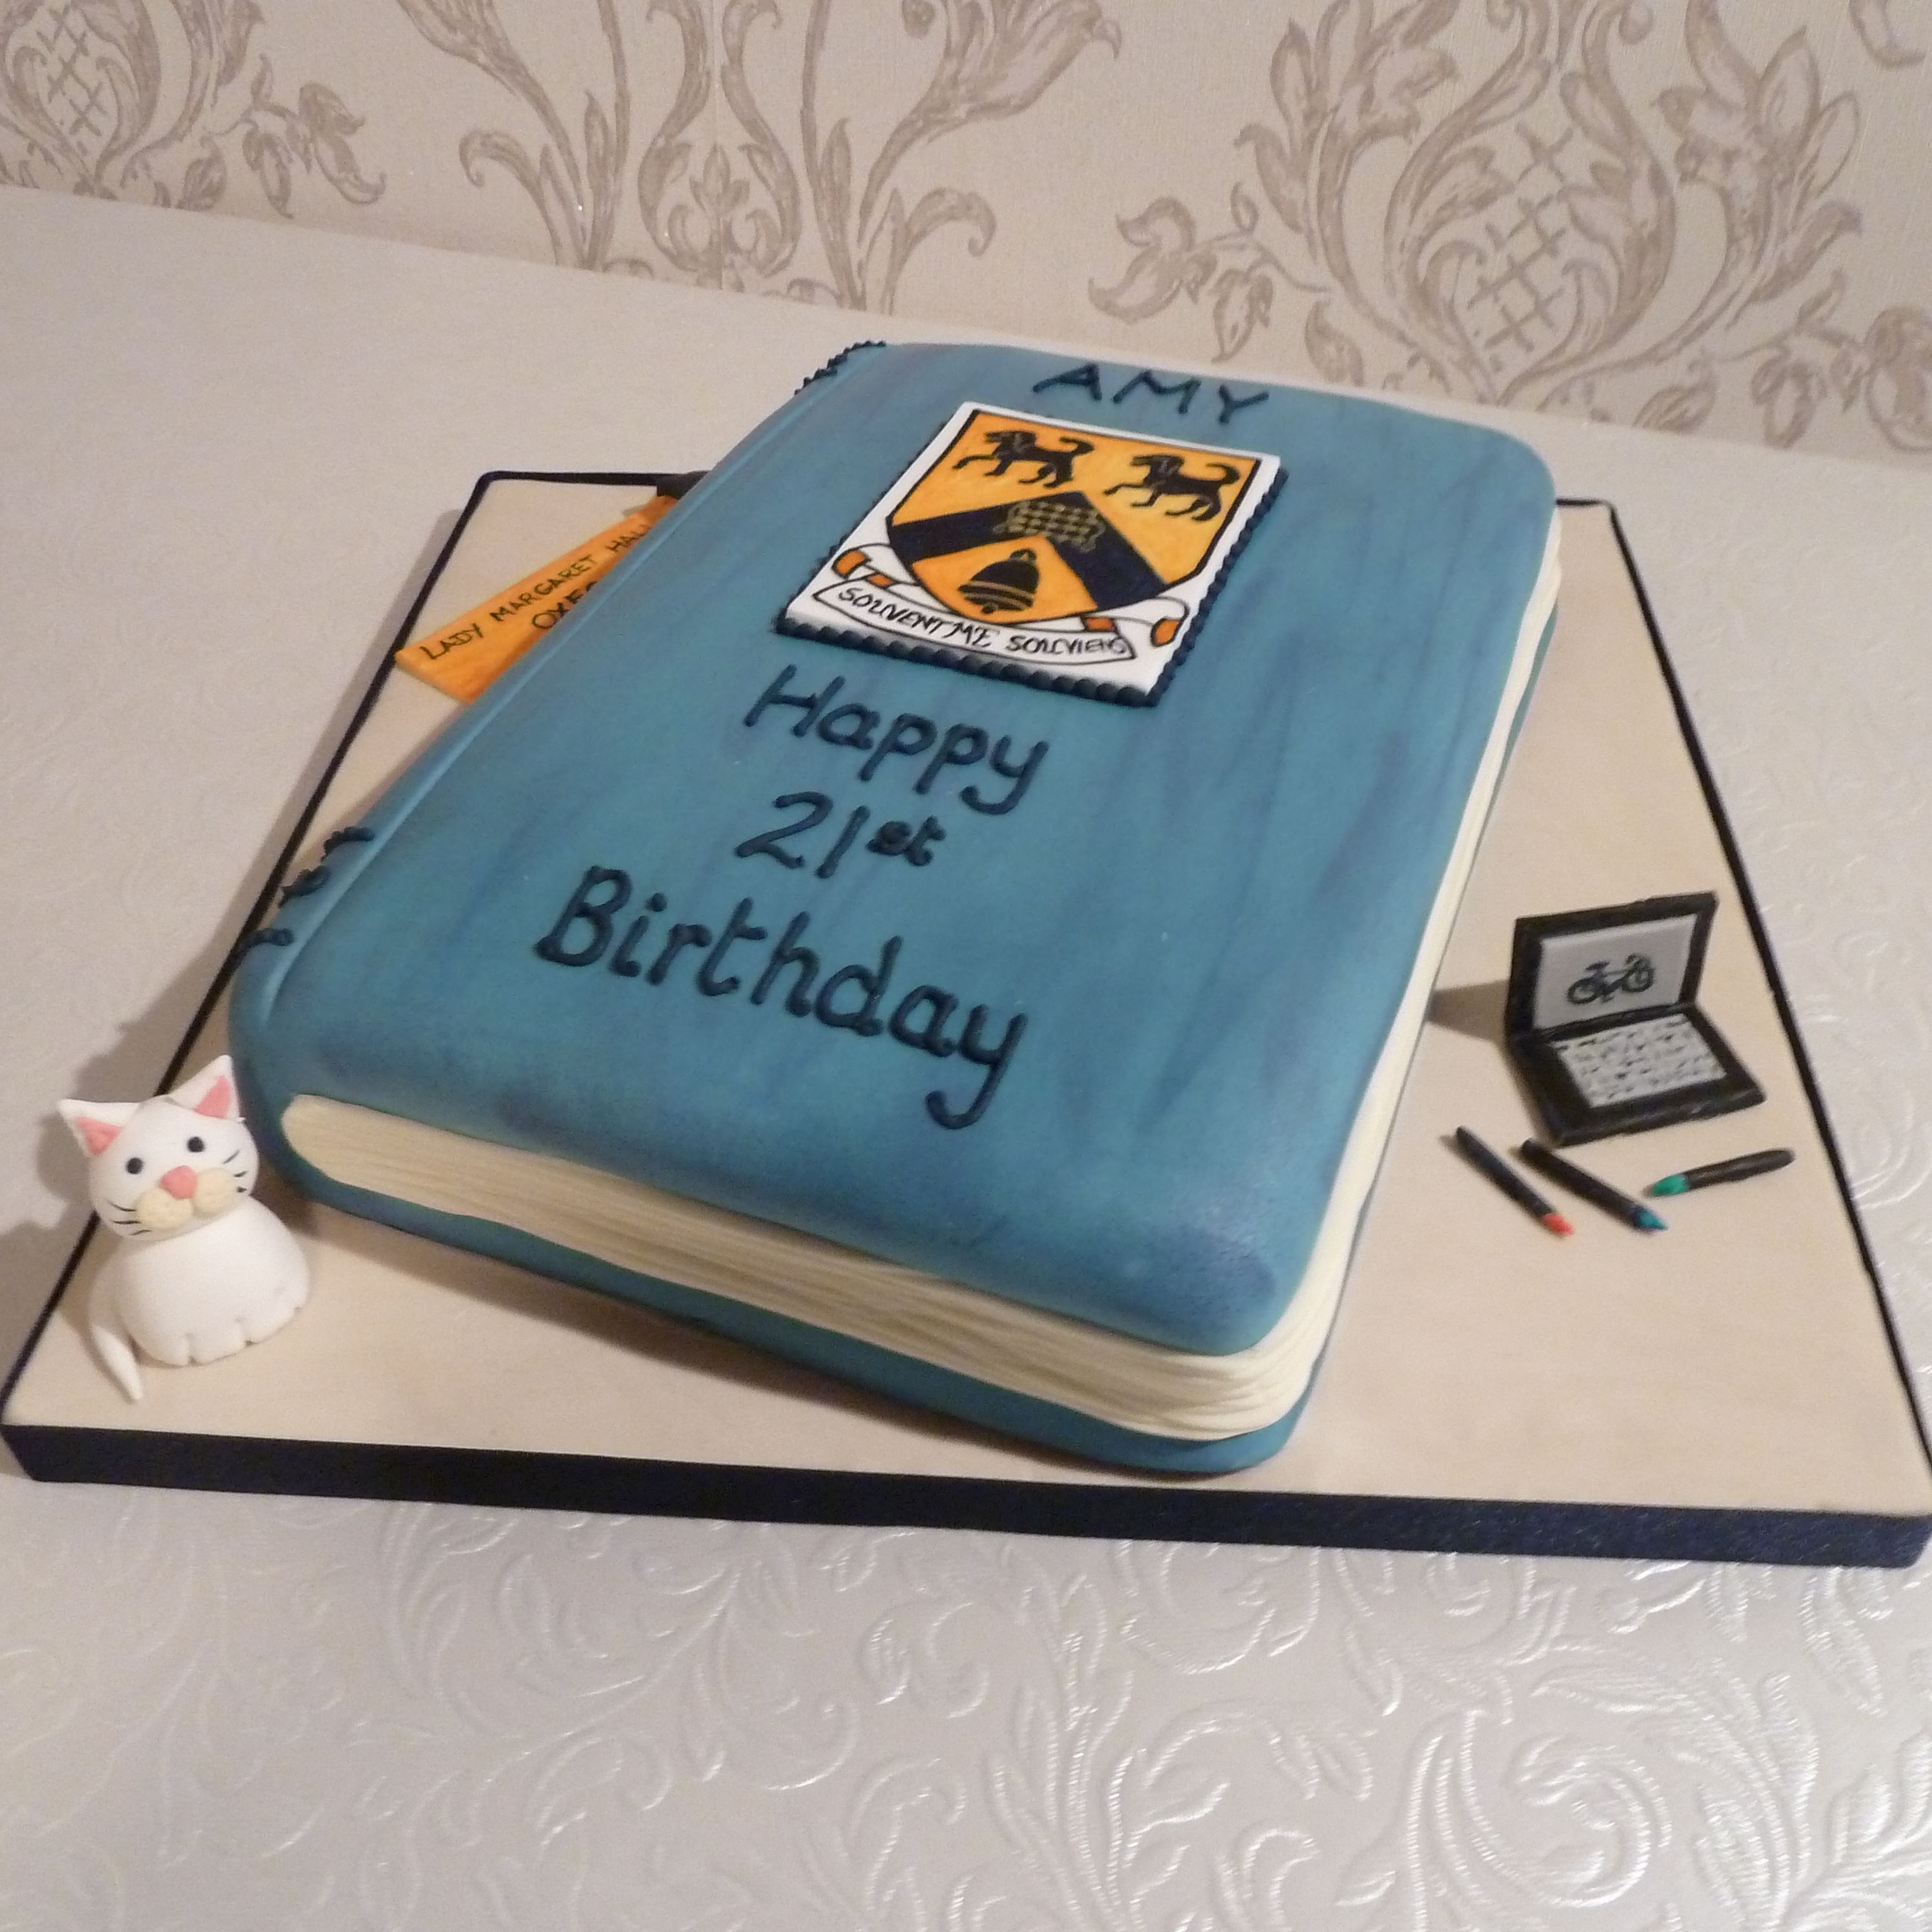 Outstanding 21St Birthday Cake For A History Student From Cakesbykit Co Uk Funny Birthday Cards Online Inifodamsfinfo